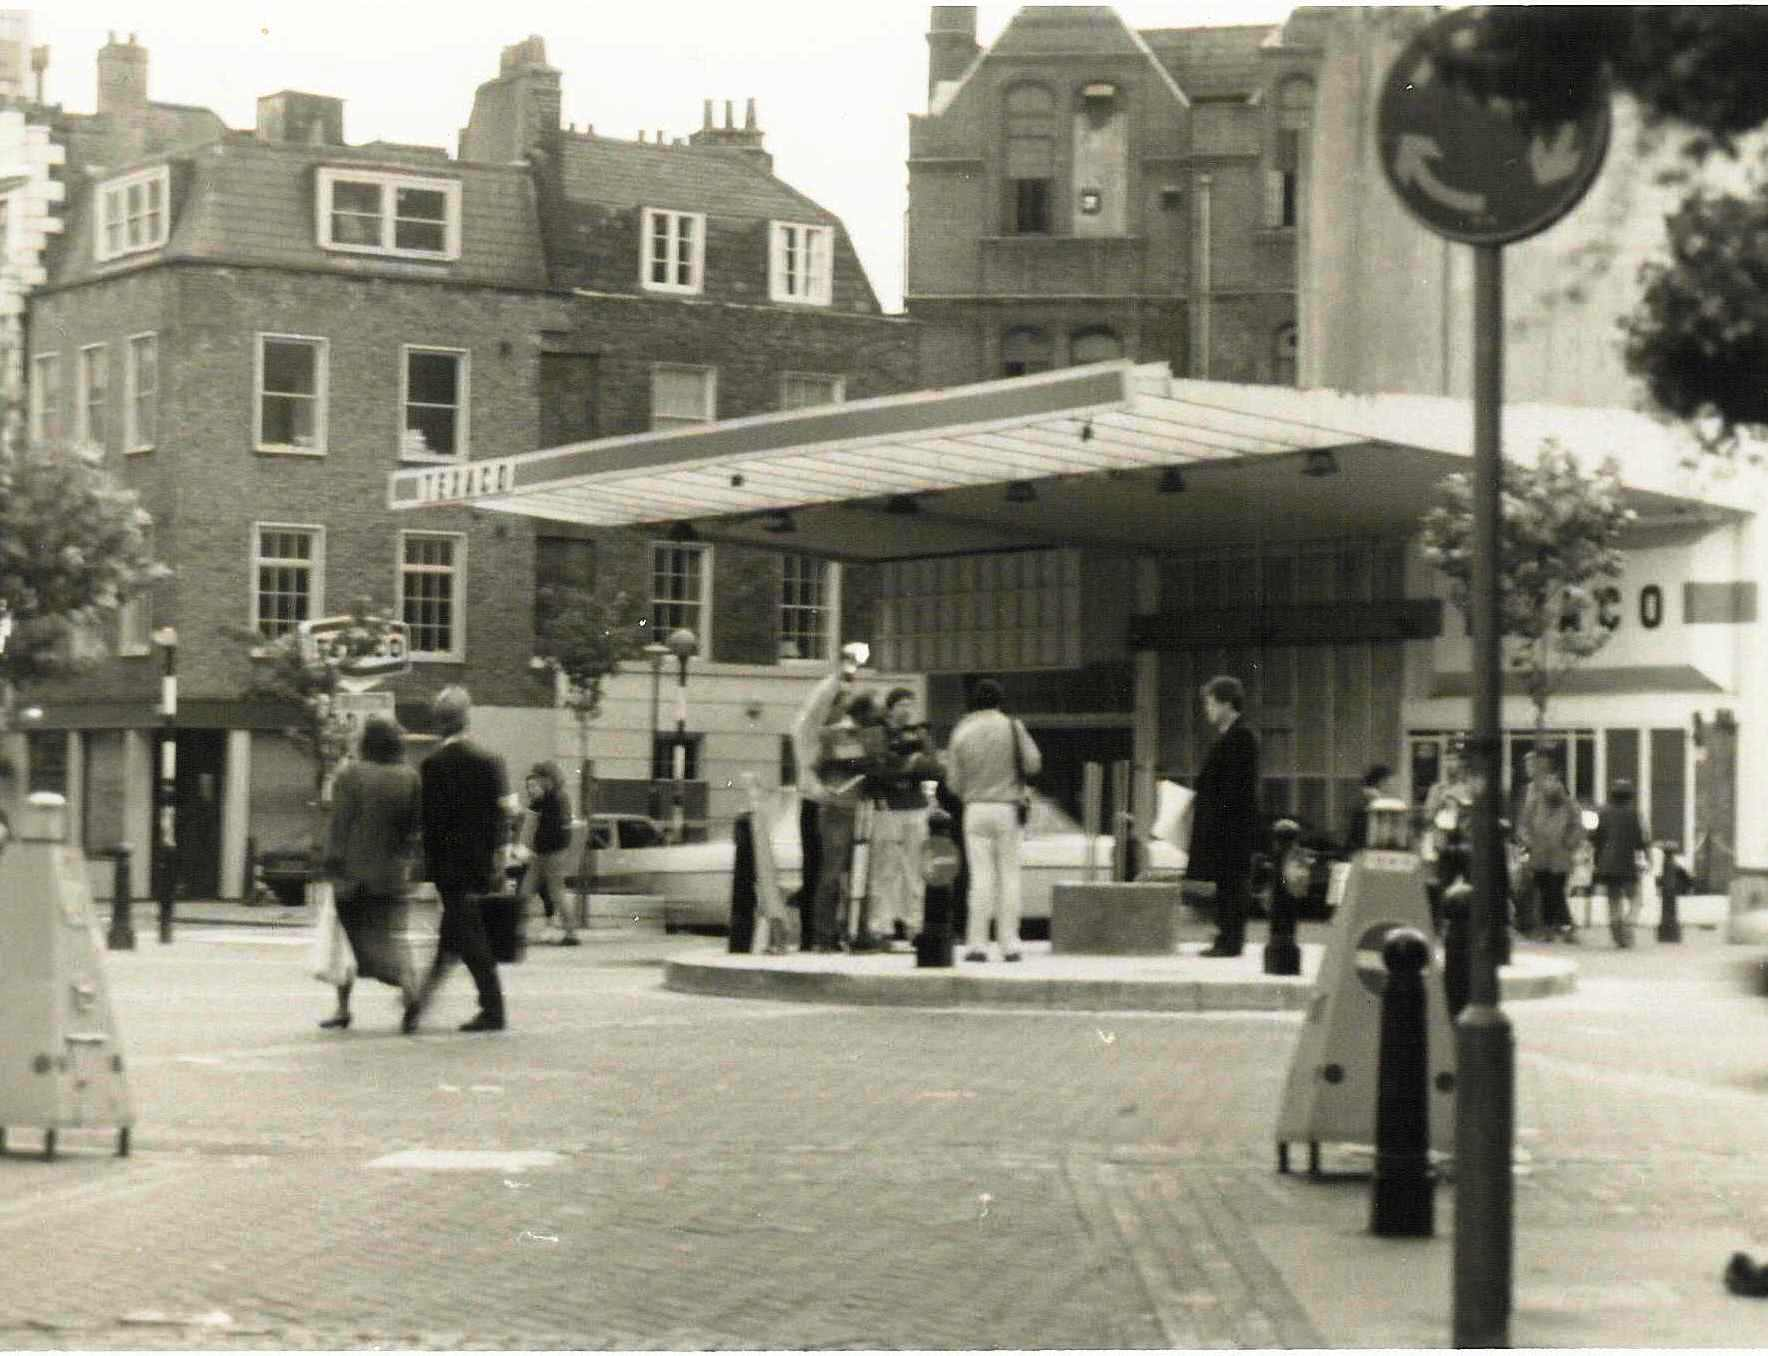 Petrol station on the Dials, c.1984, now Fielding Court. Sale of site intitiated by The Trust.